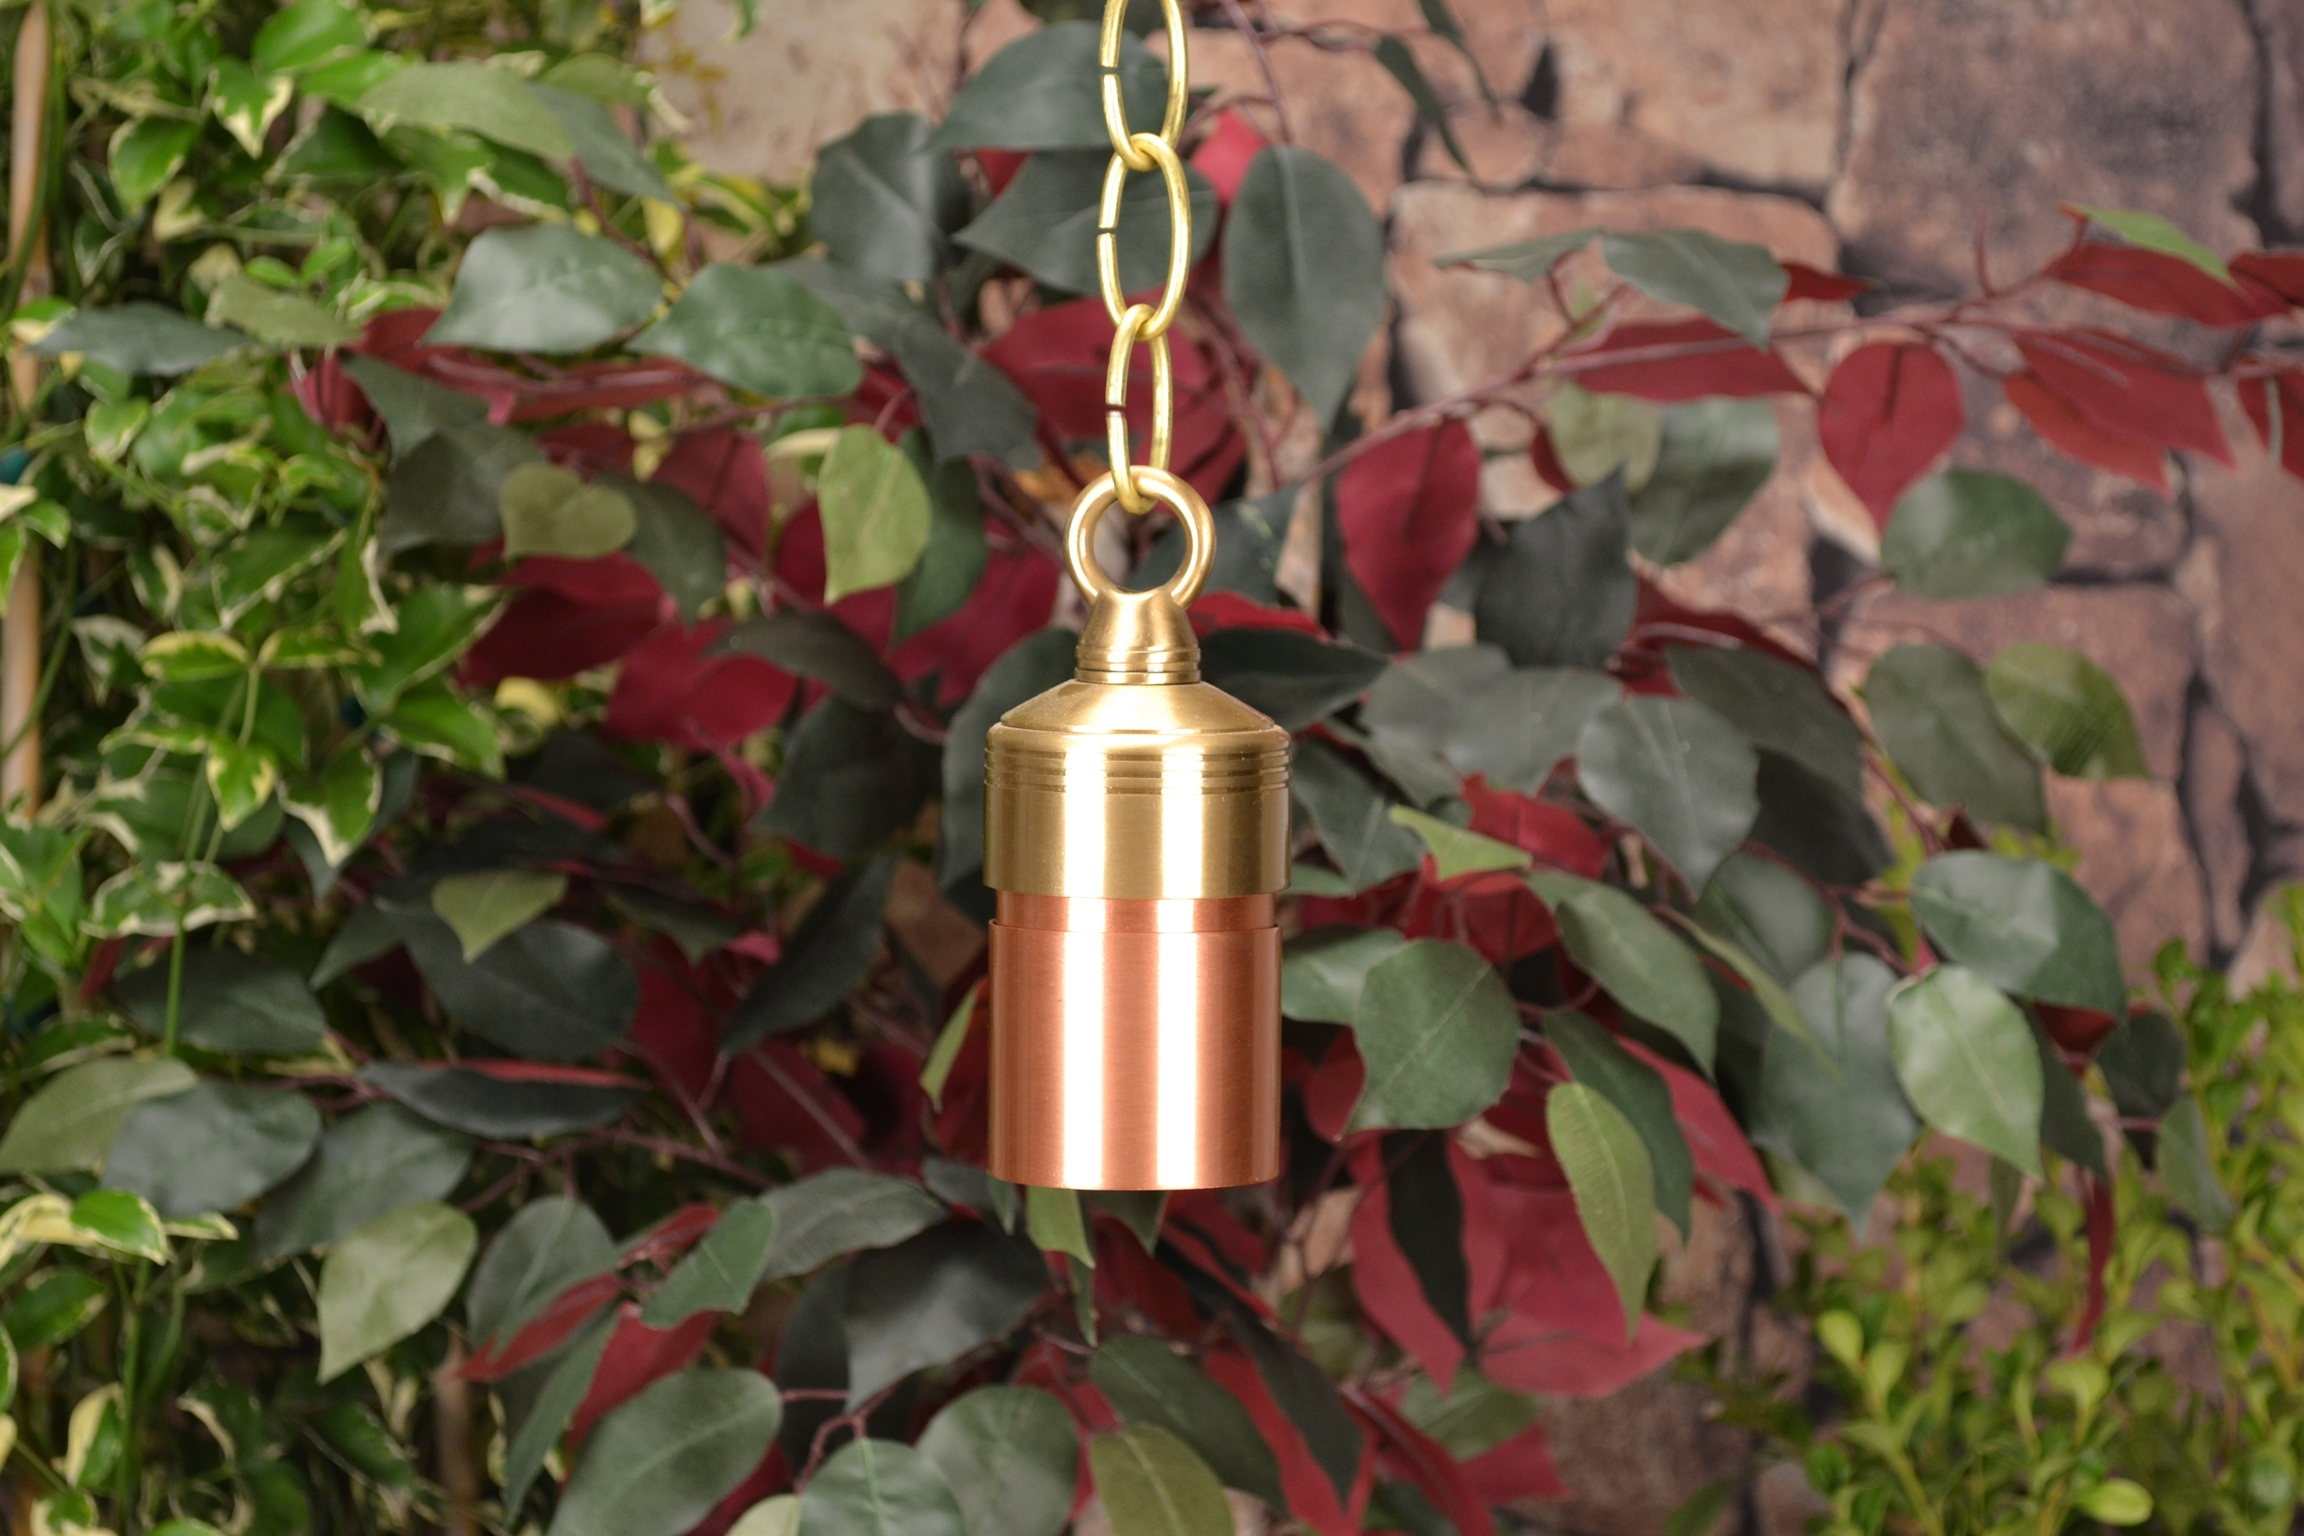 Lancasterunique Lighting Systems 12 Volt Copper Hanging Niche Pertaining To Low Voltage Outdoor Hanging Lights (#3 of 15)